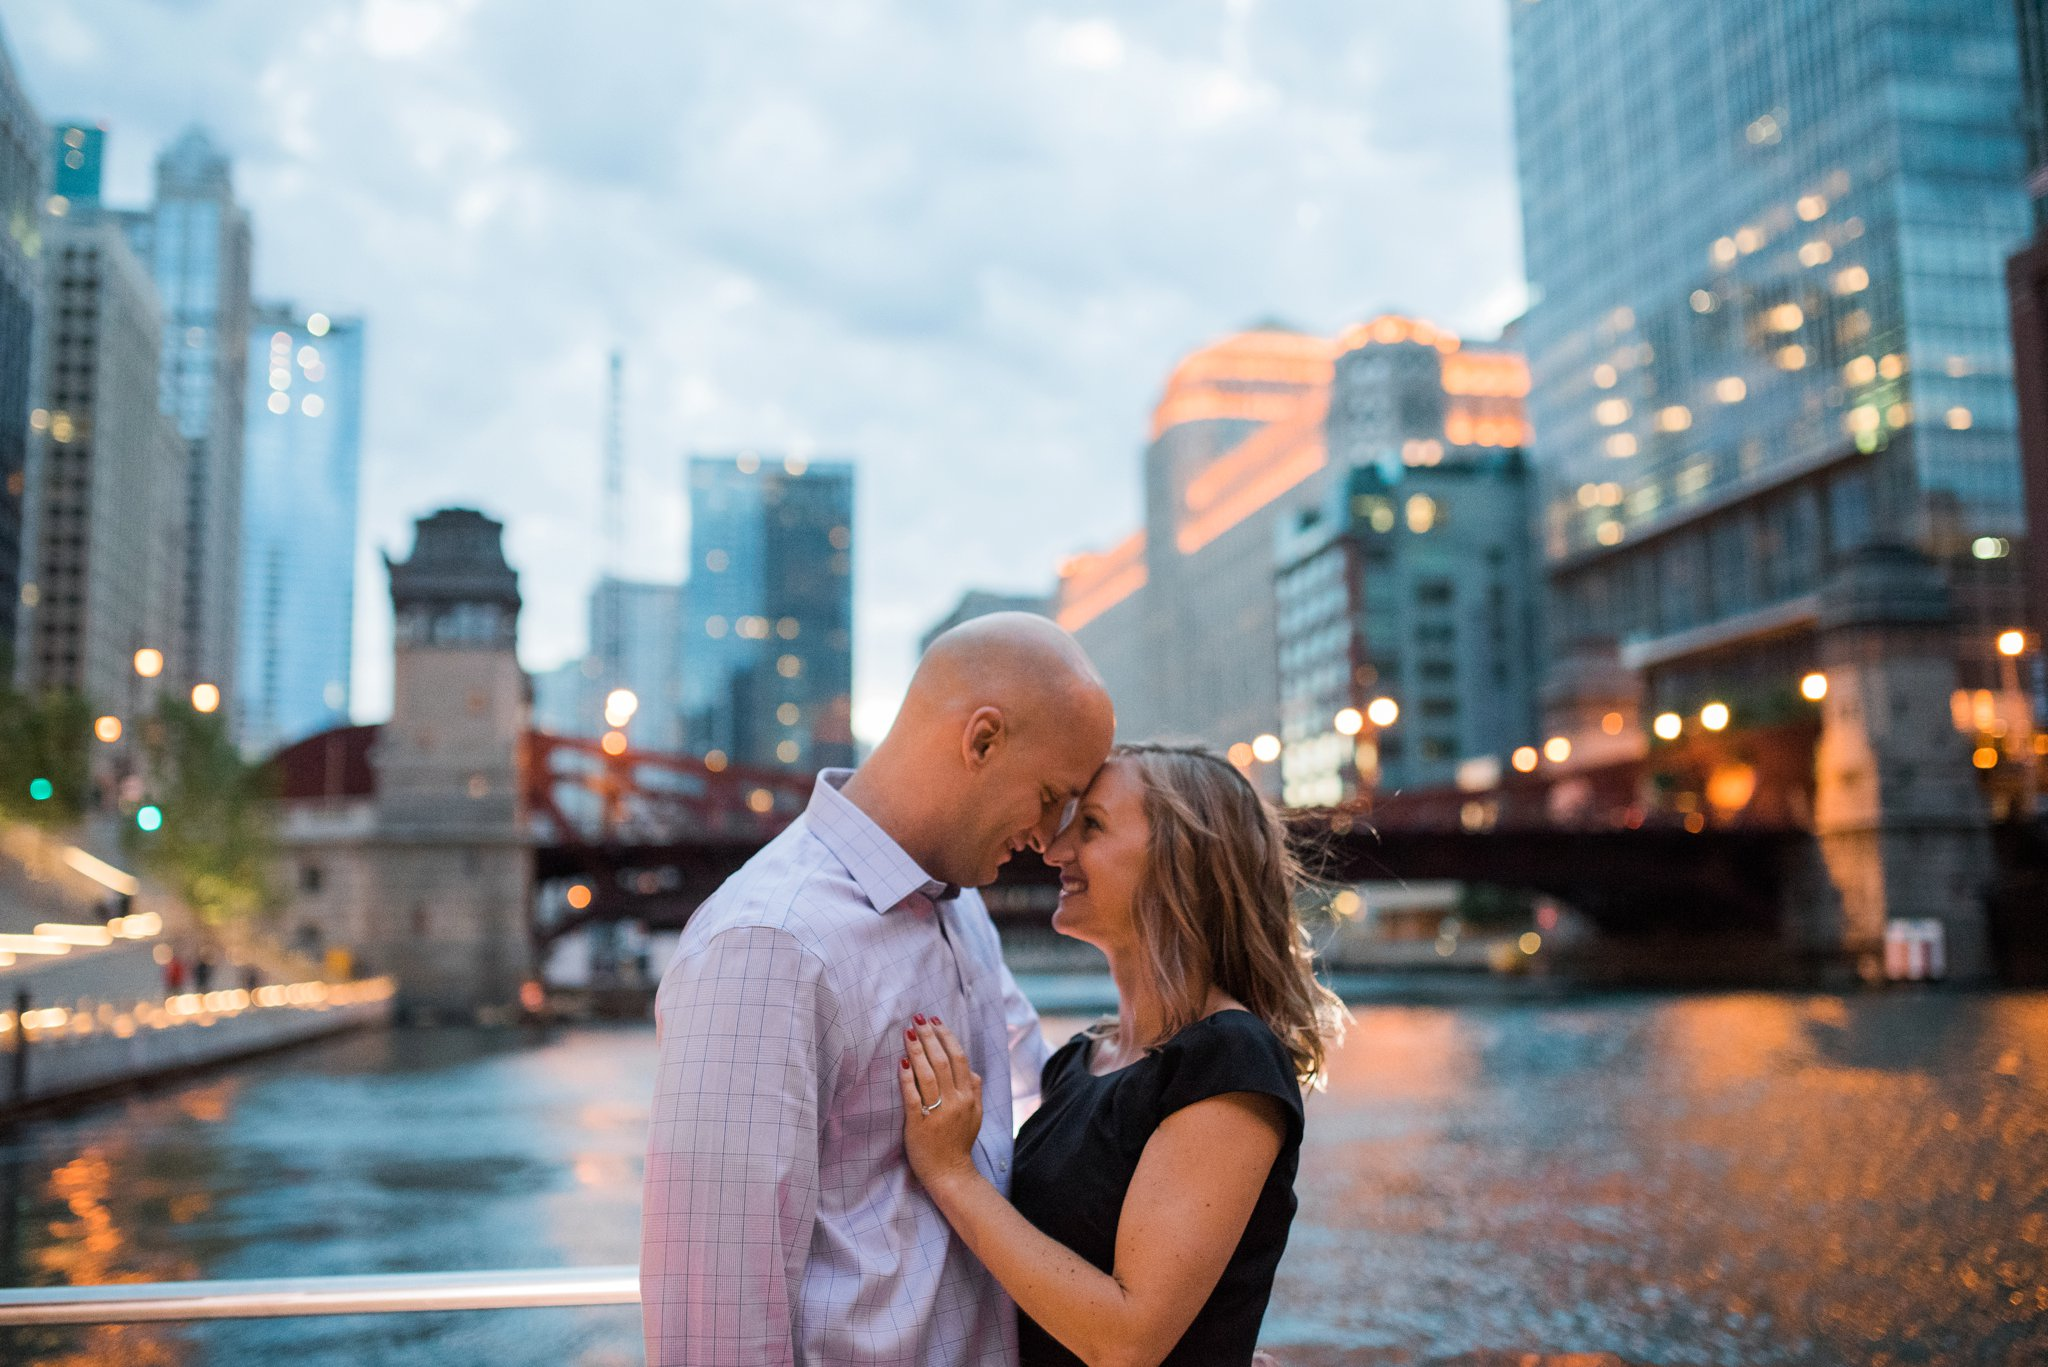 Downtown-Chicago-Loop-Wedding-Photography-099.jpg